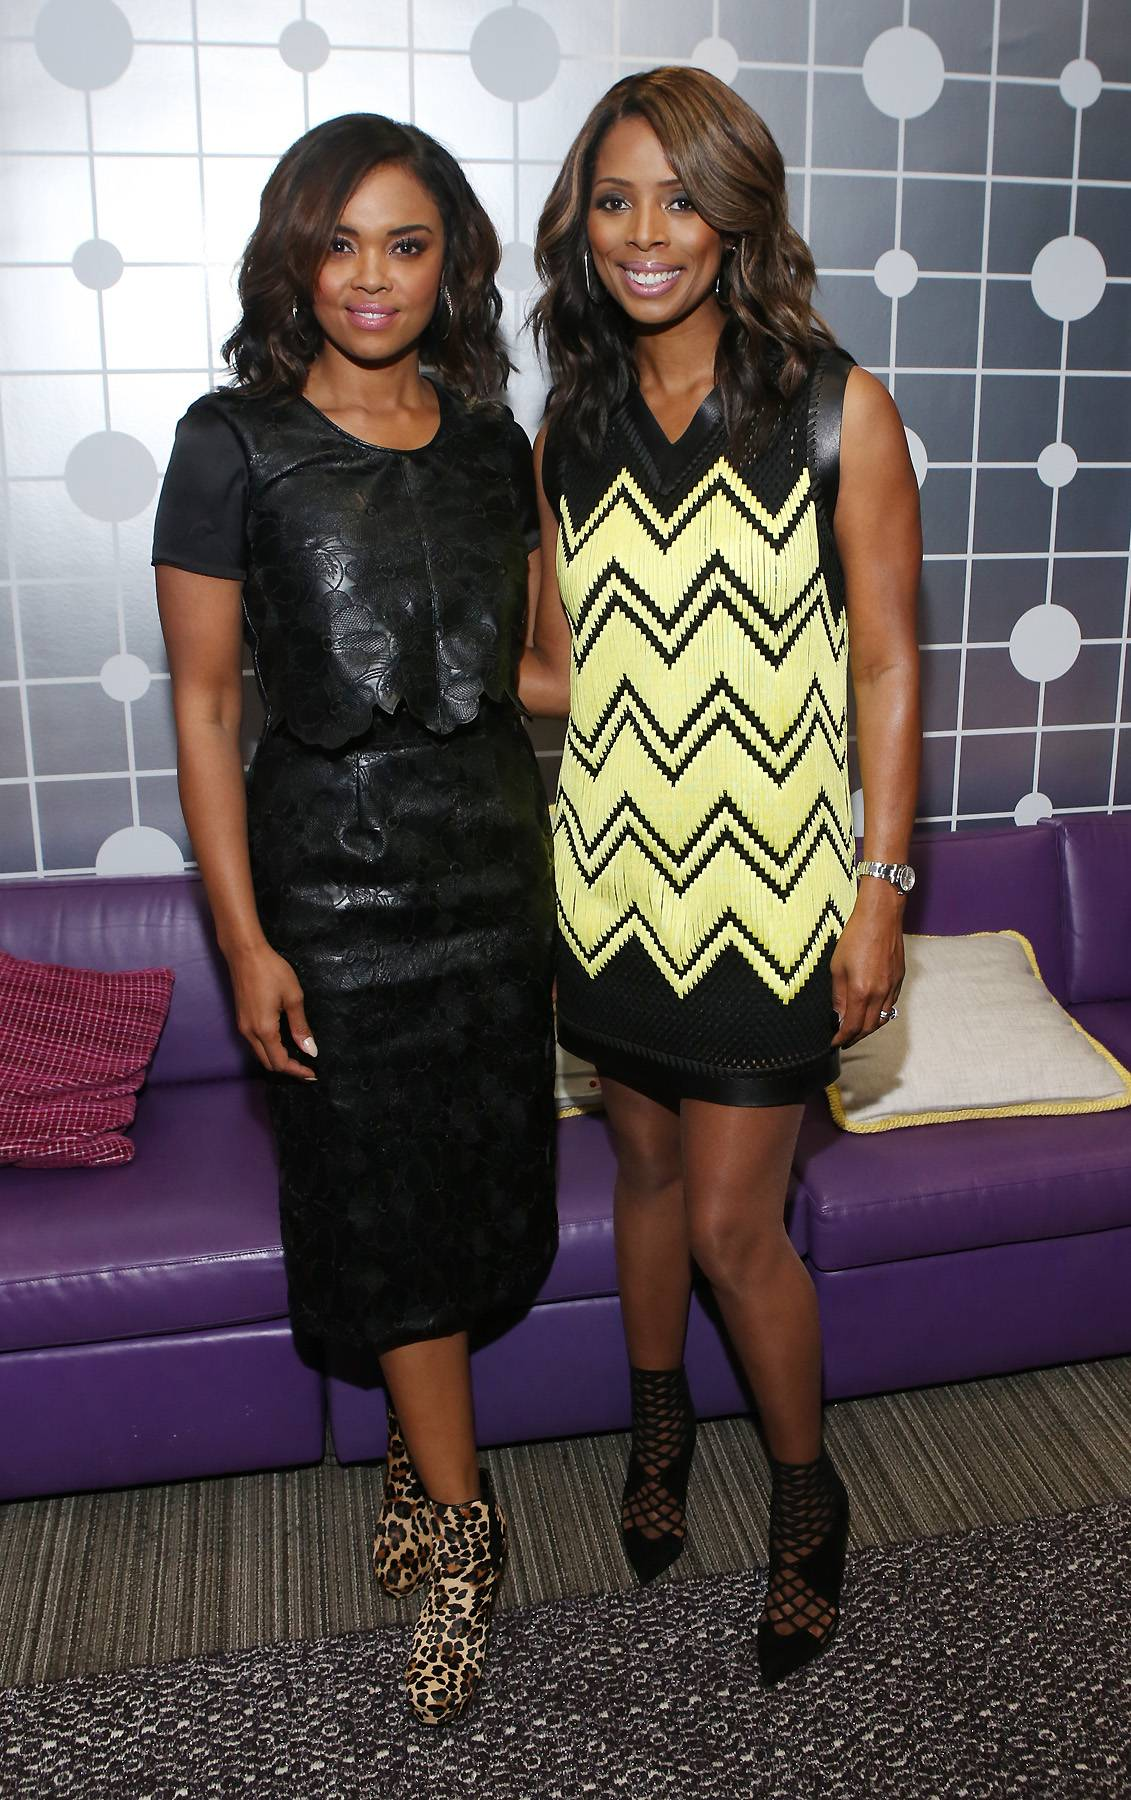 Sister-Actresses - (Photo: Bennett Raglin/BET/Getty Images for BET)